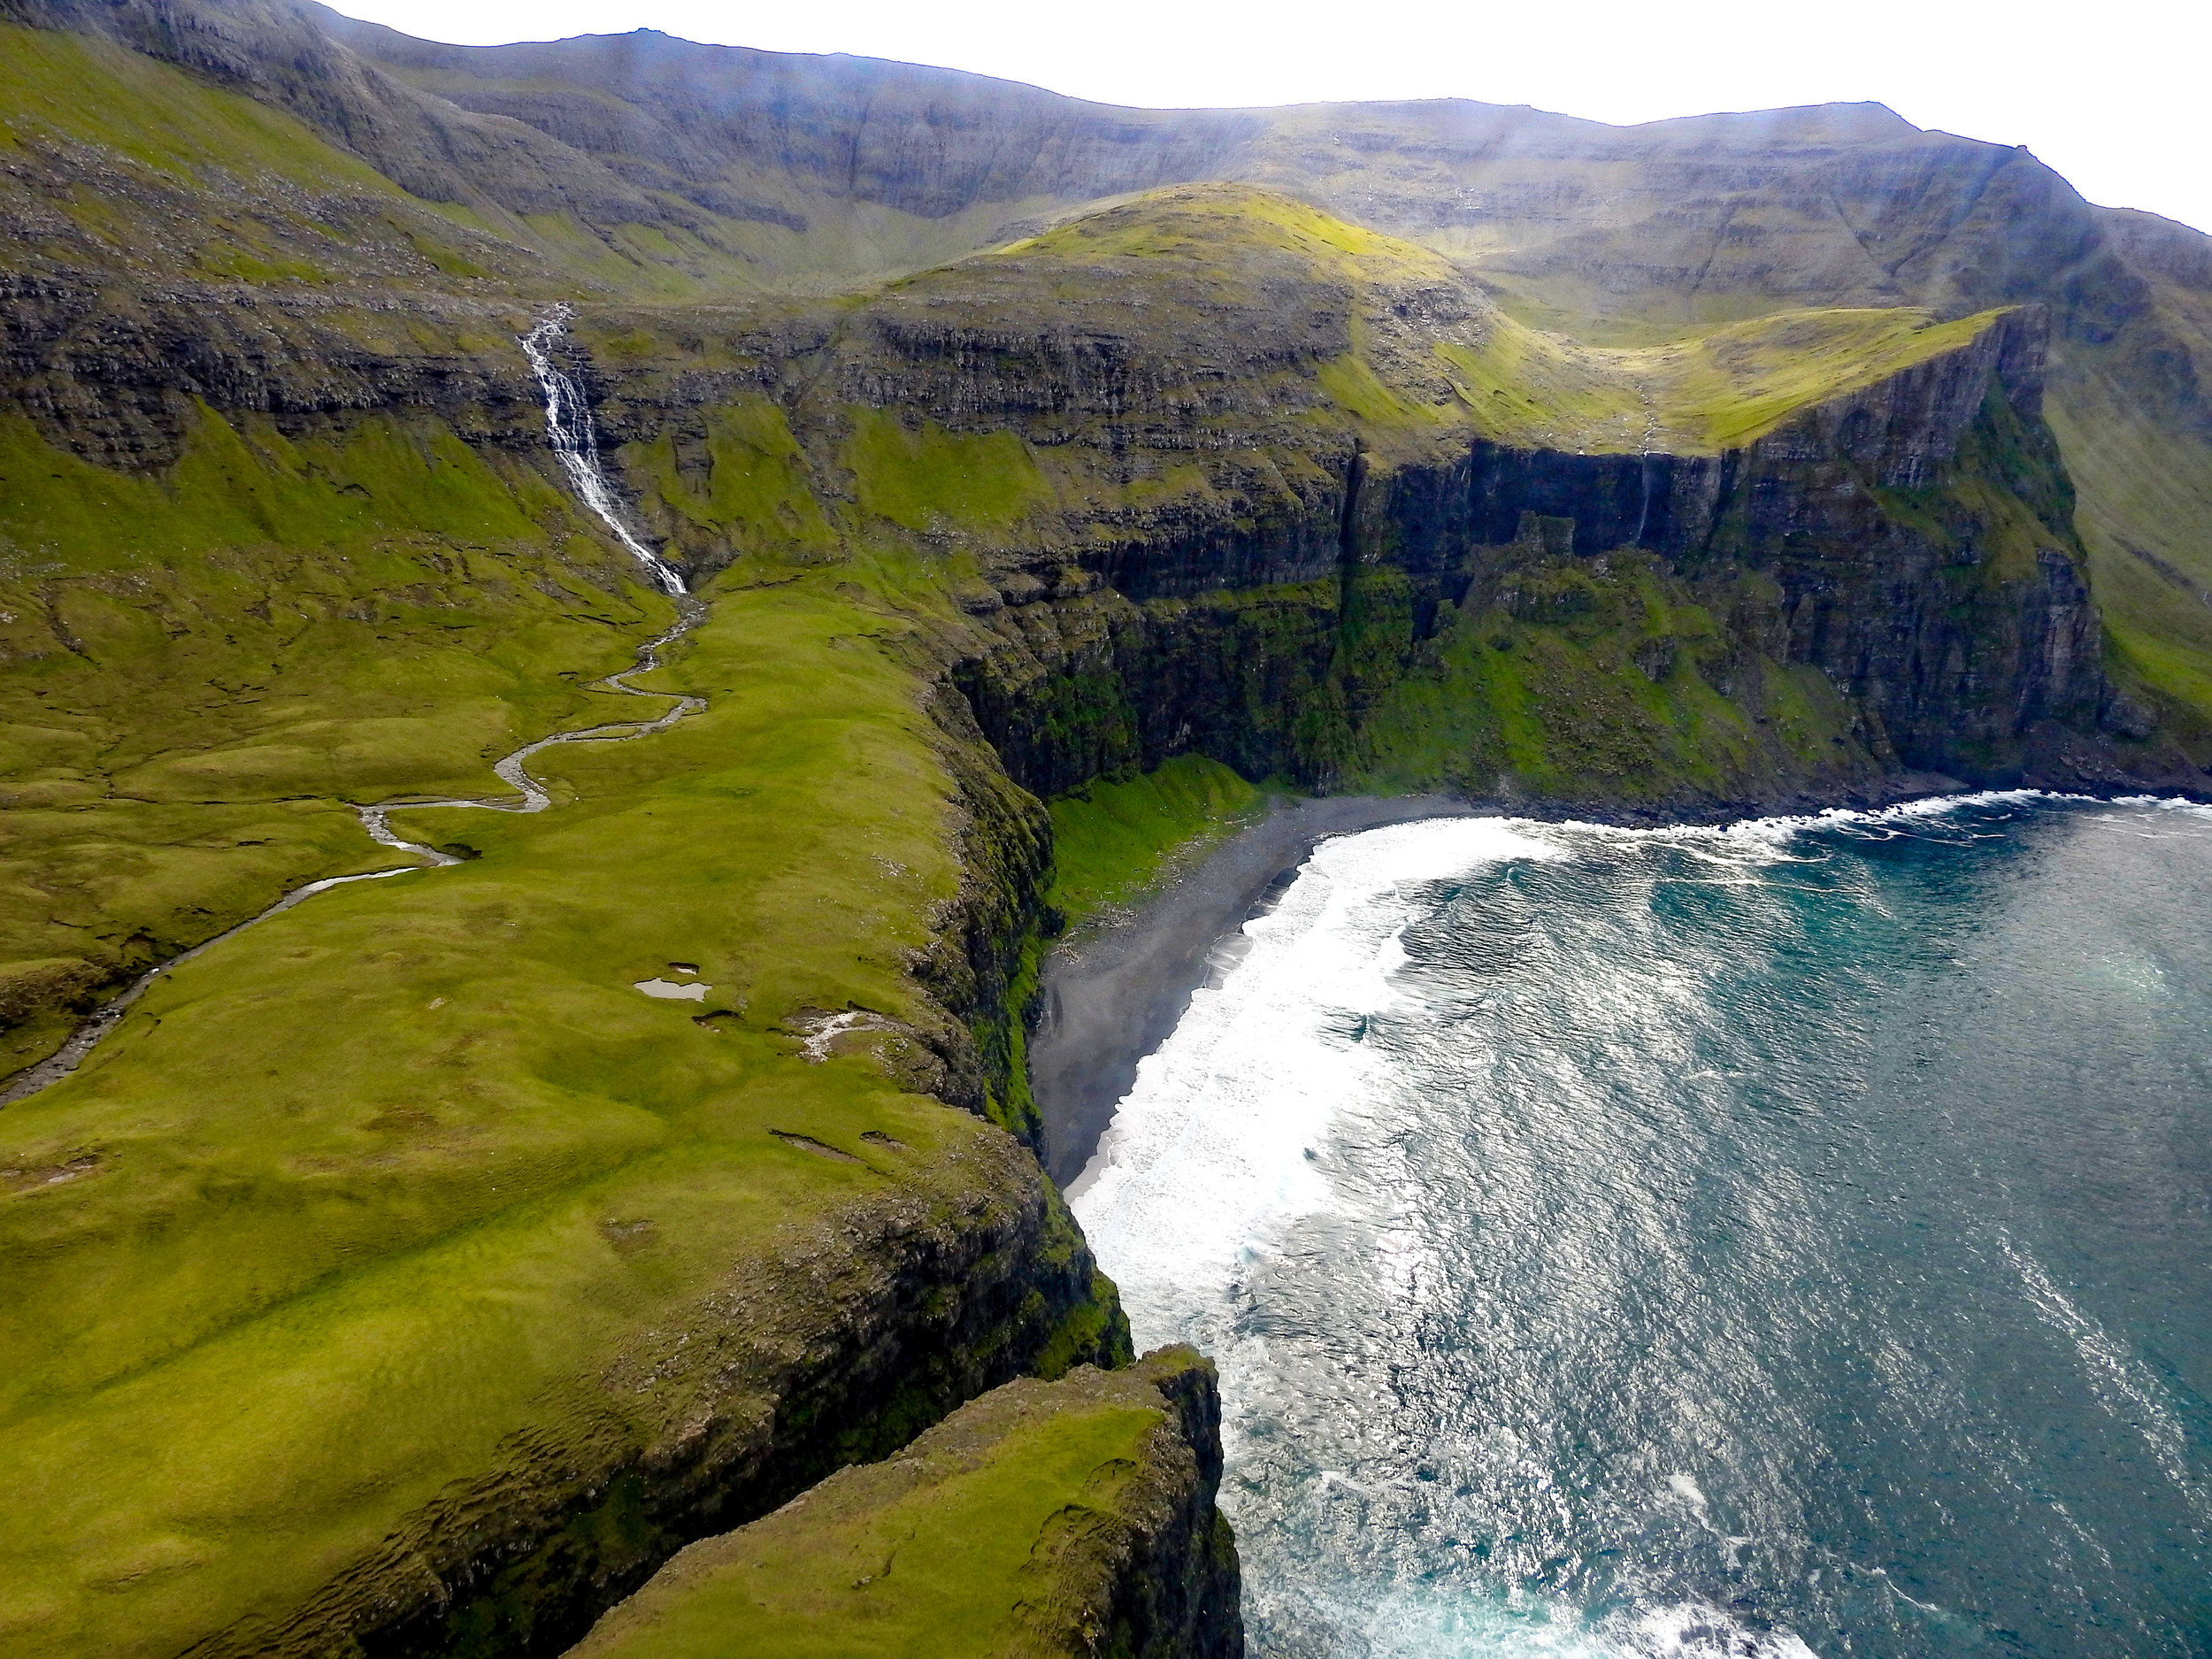 Aerial shots of the Faroes